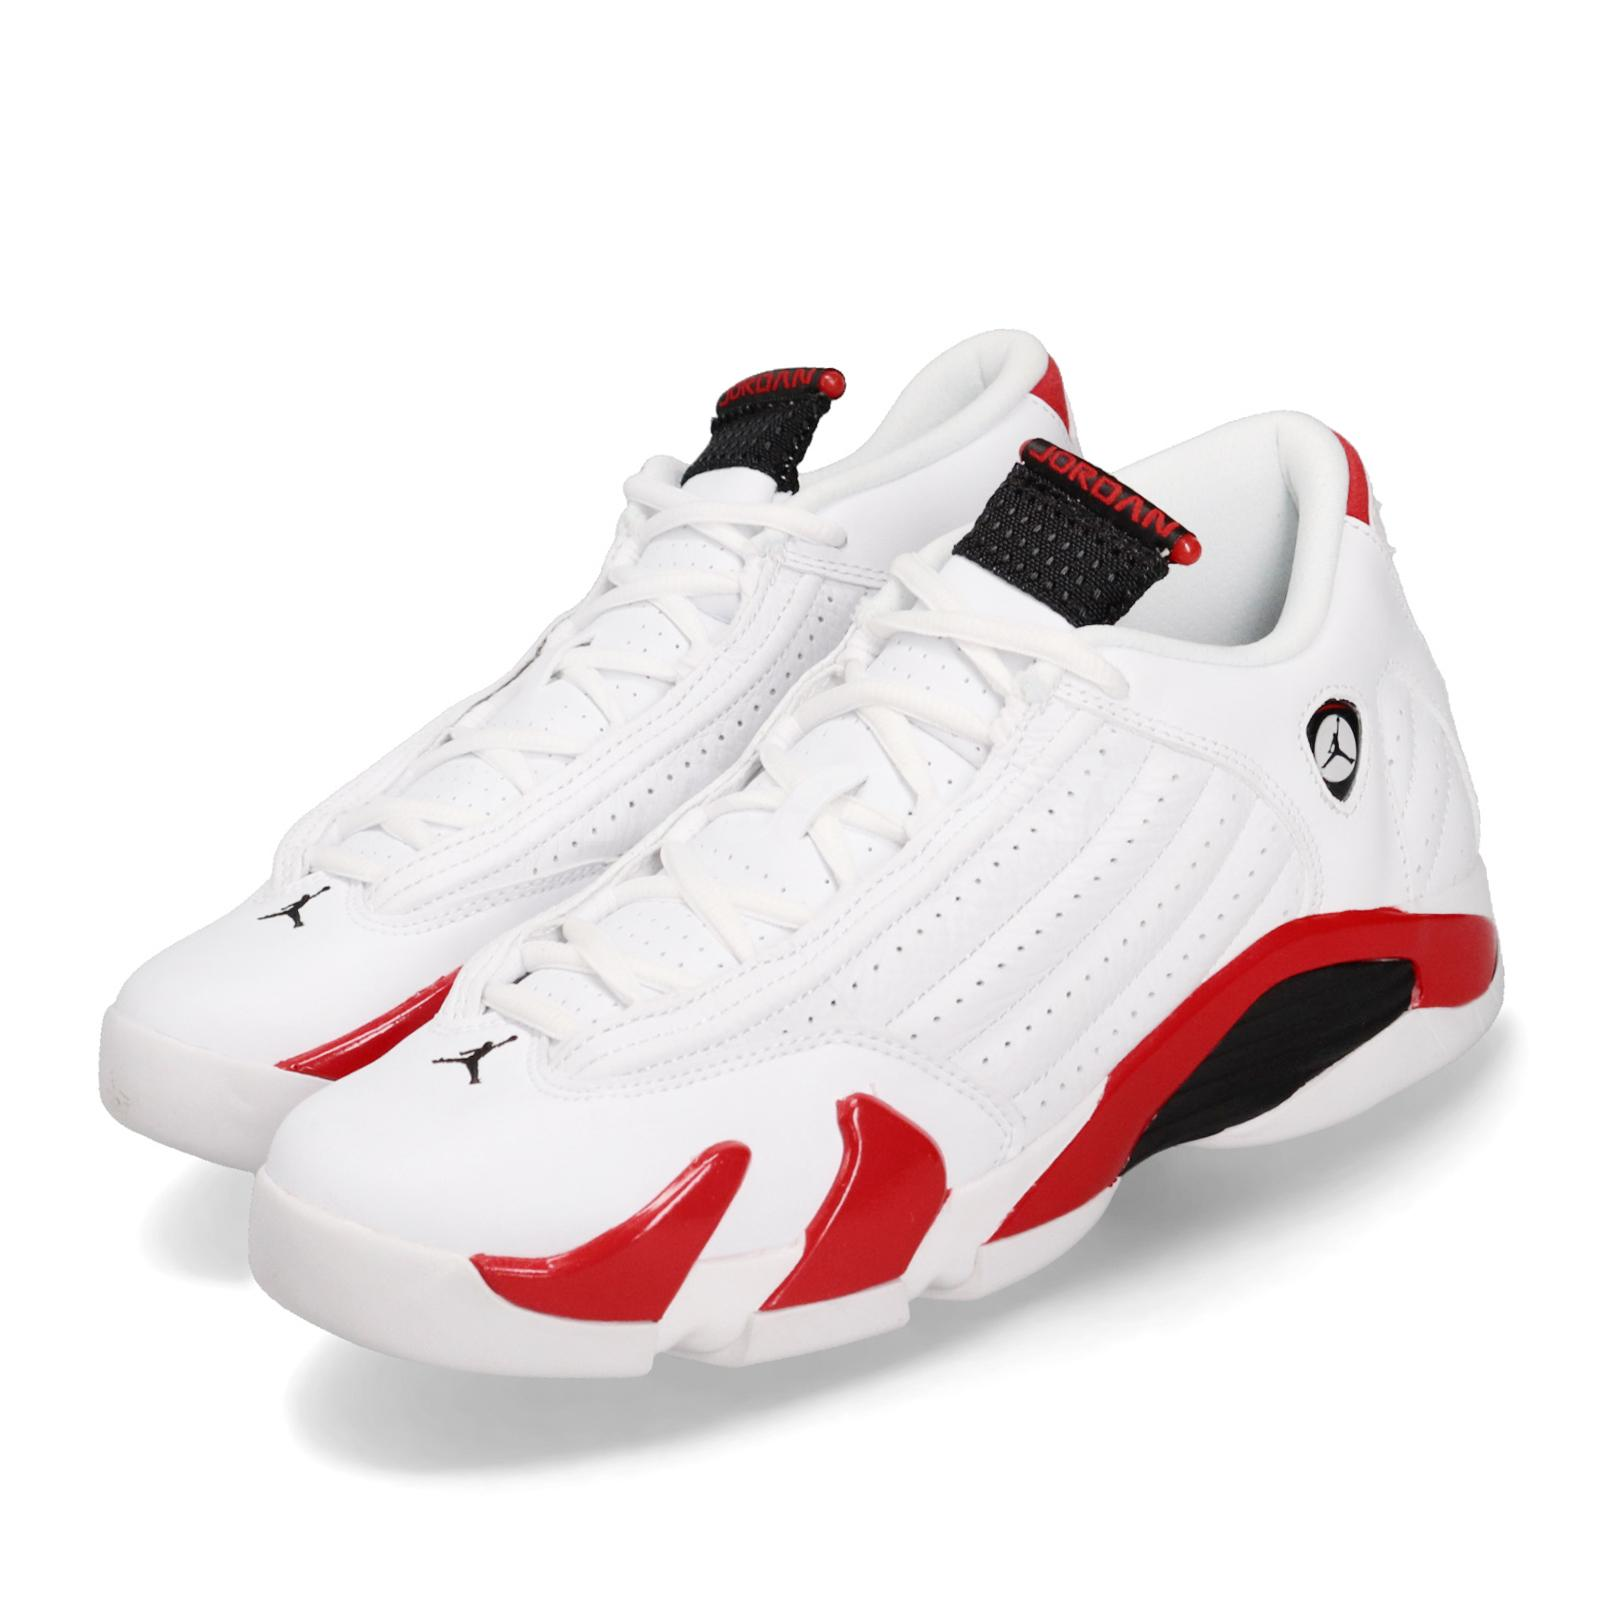 timeless design b2d0b ab7d5 Details about Nike Air Jordan 14 Retro BG Rip Hamilton White Red AJ14 XIV  OG GS 487524-100